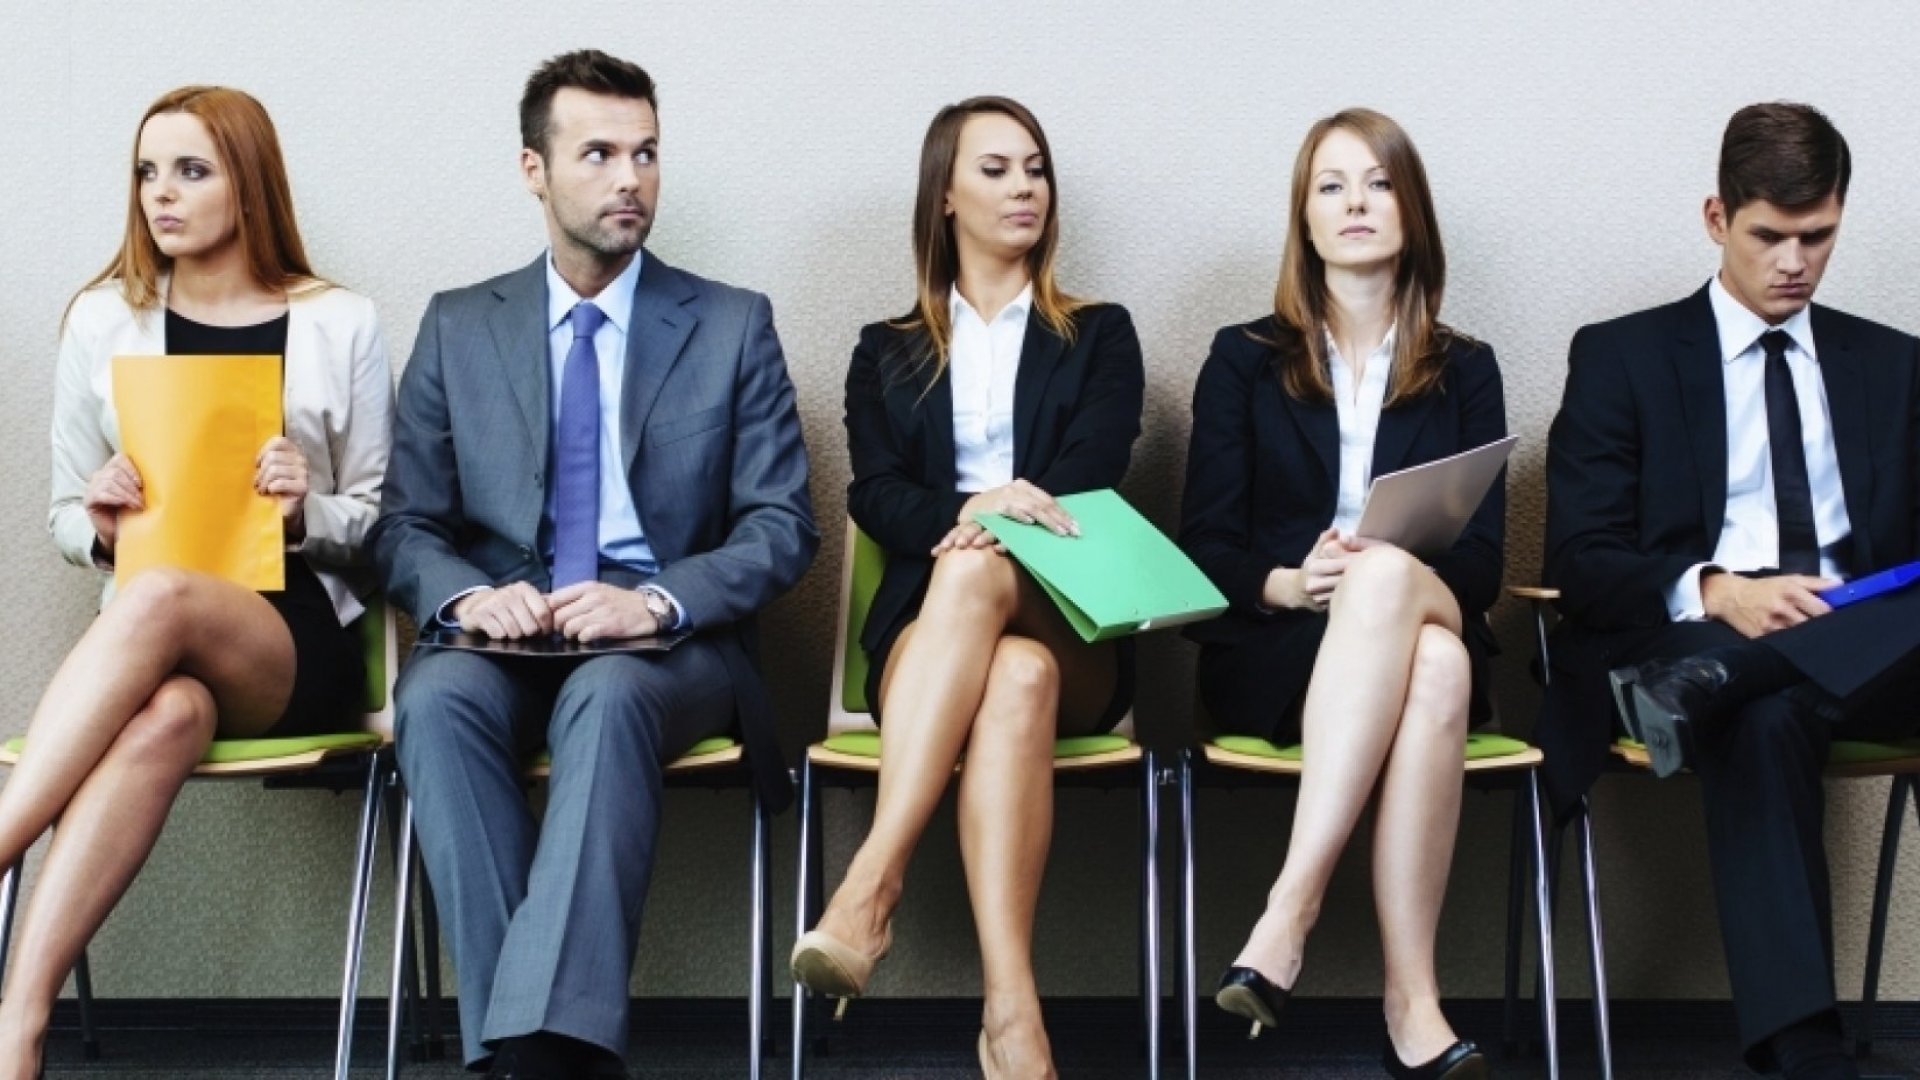 These 4 Interview Tricks Are Mean--But They Actually Work